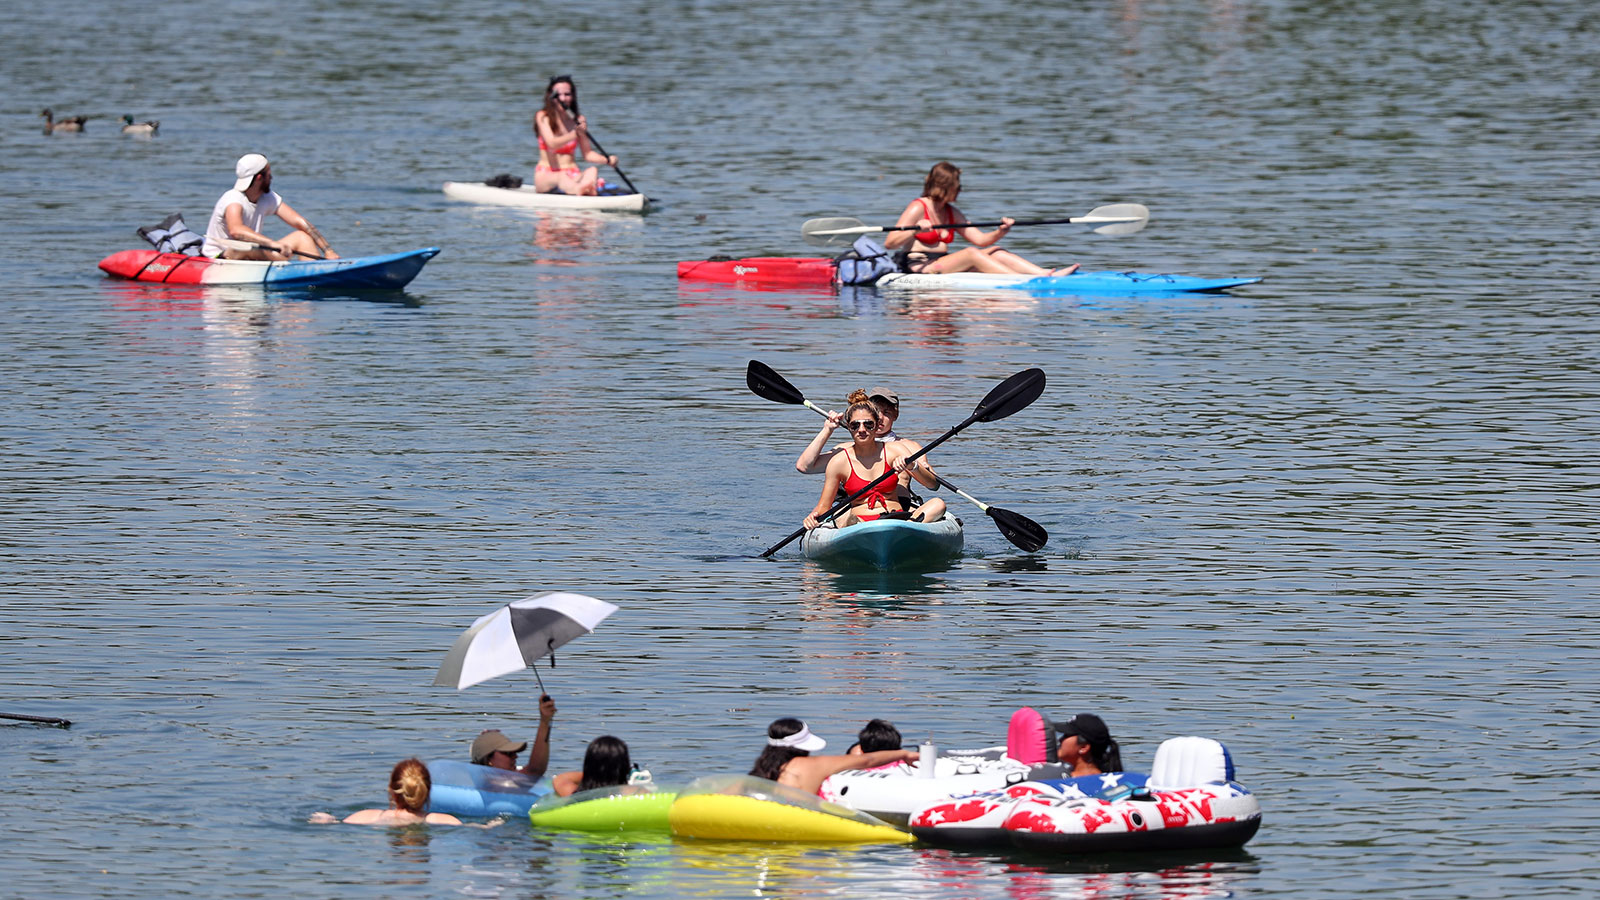 Residents swim, paddle board and kayak in Barton Creek in Austin, Texas on May 20.